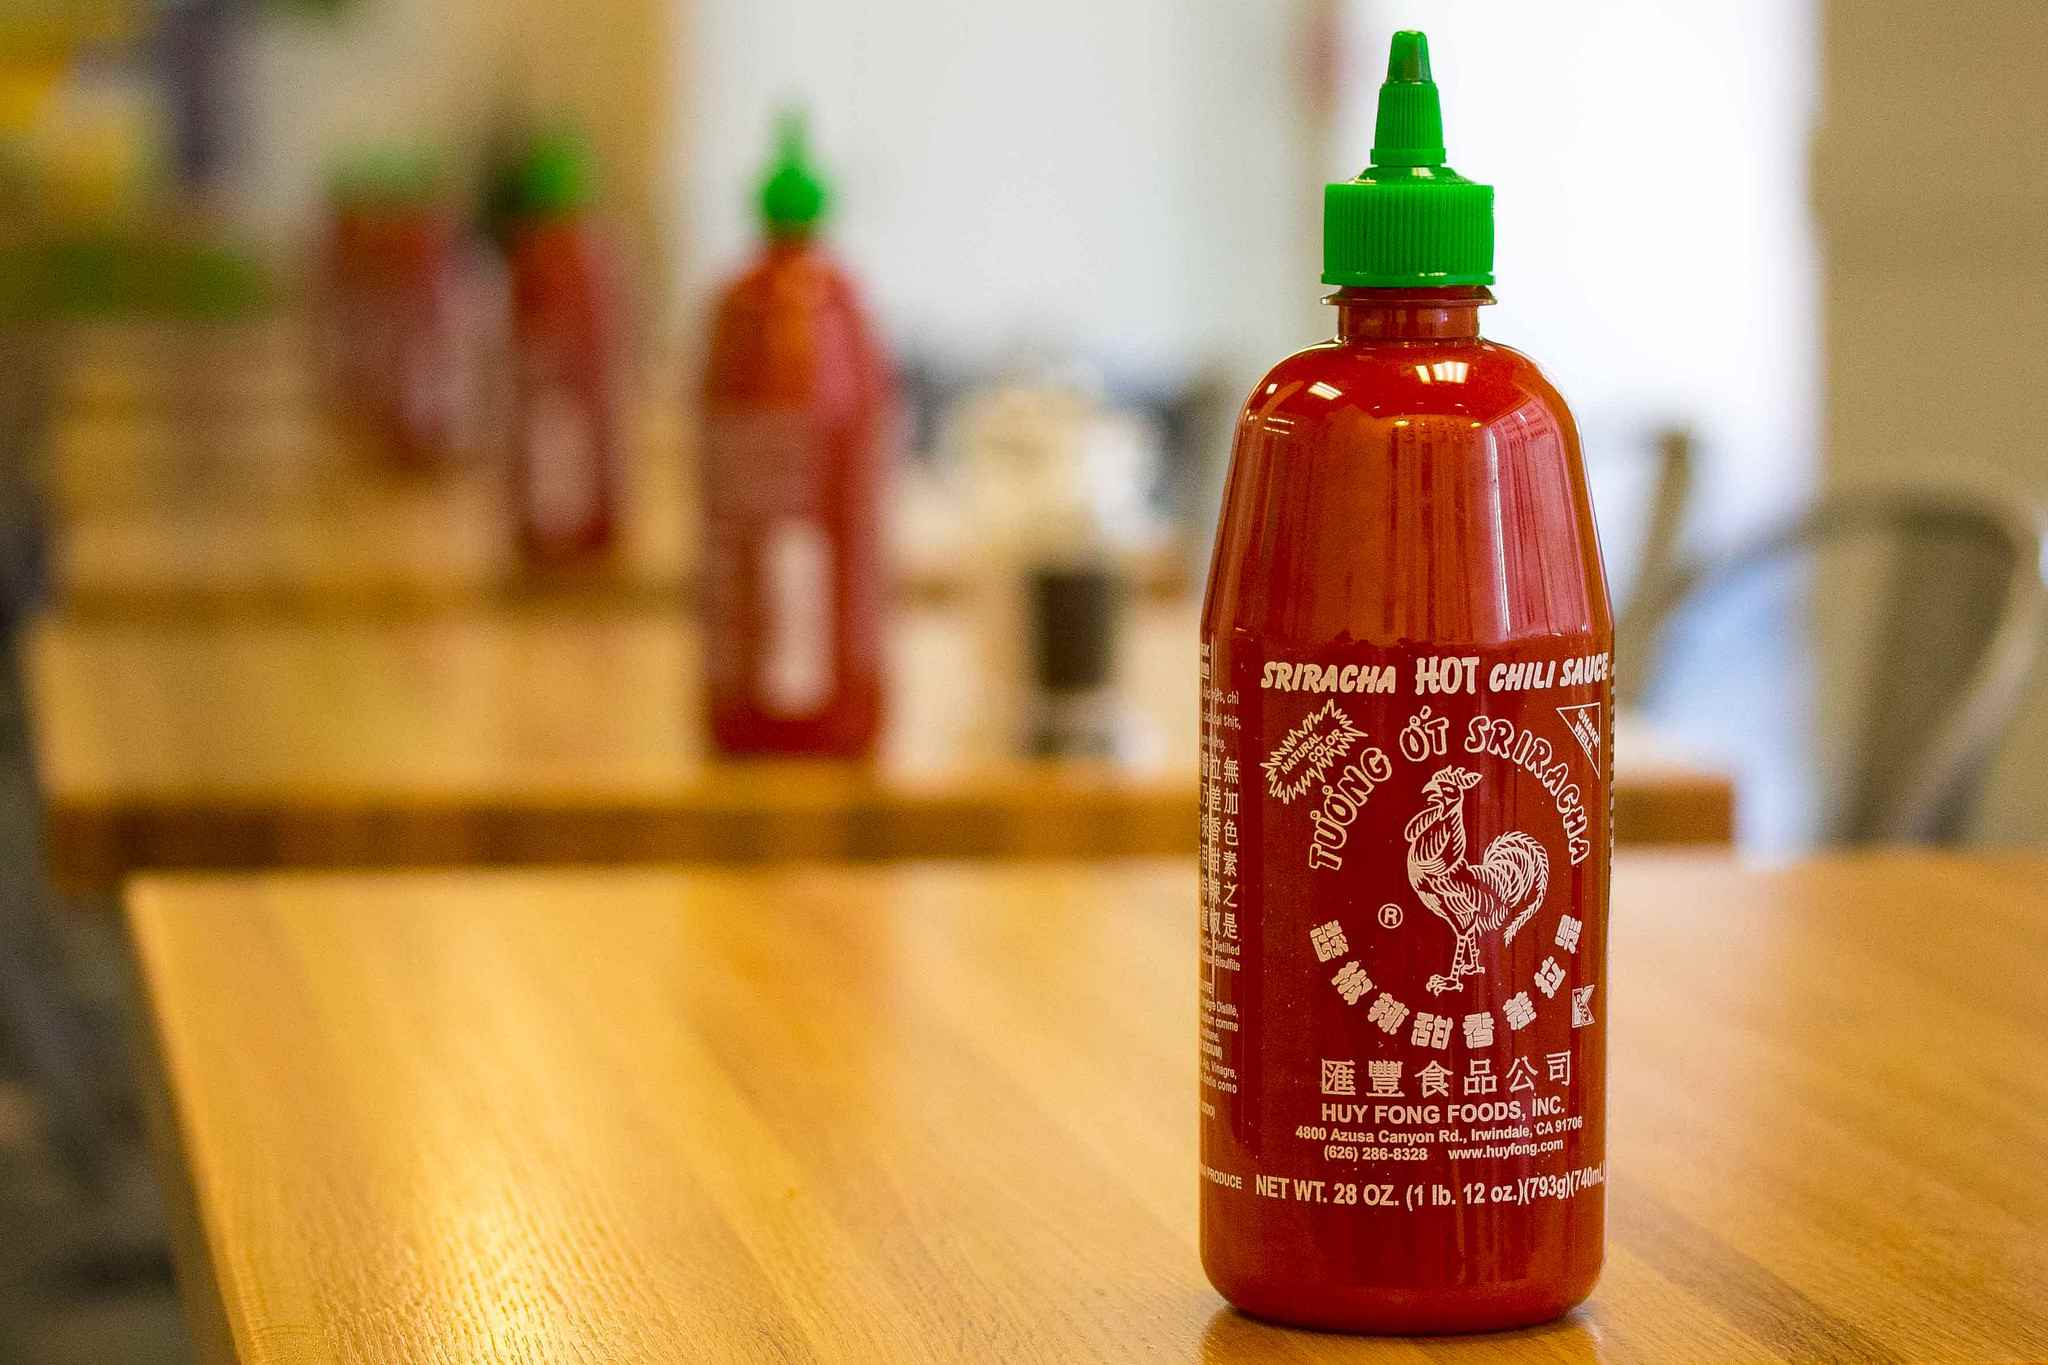 Restaurant tables lined with Sriracha sauce